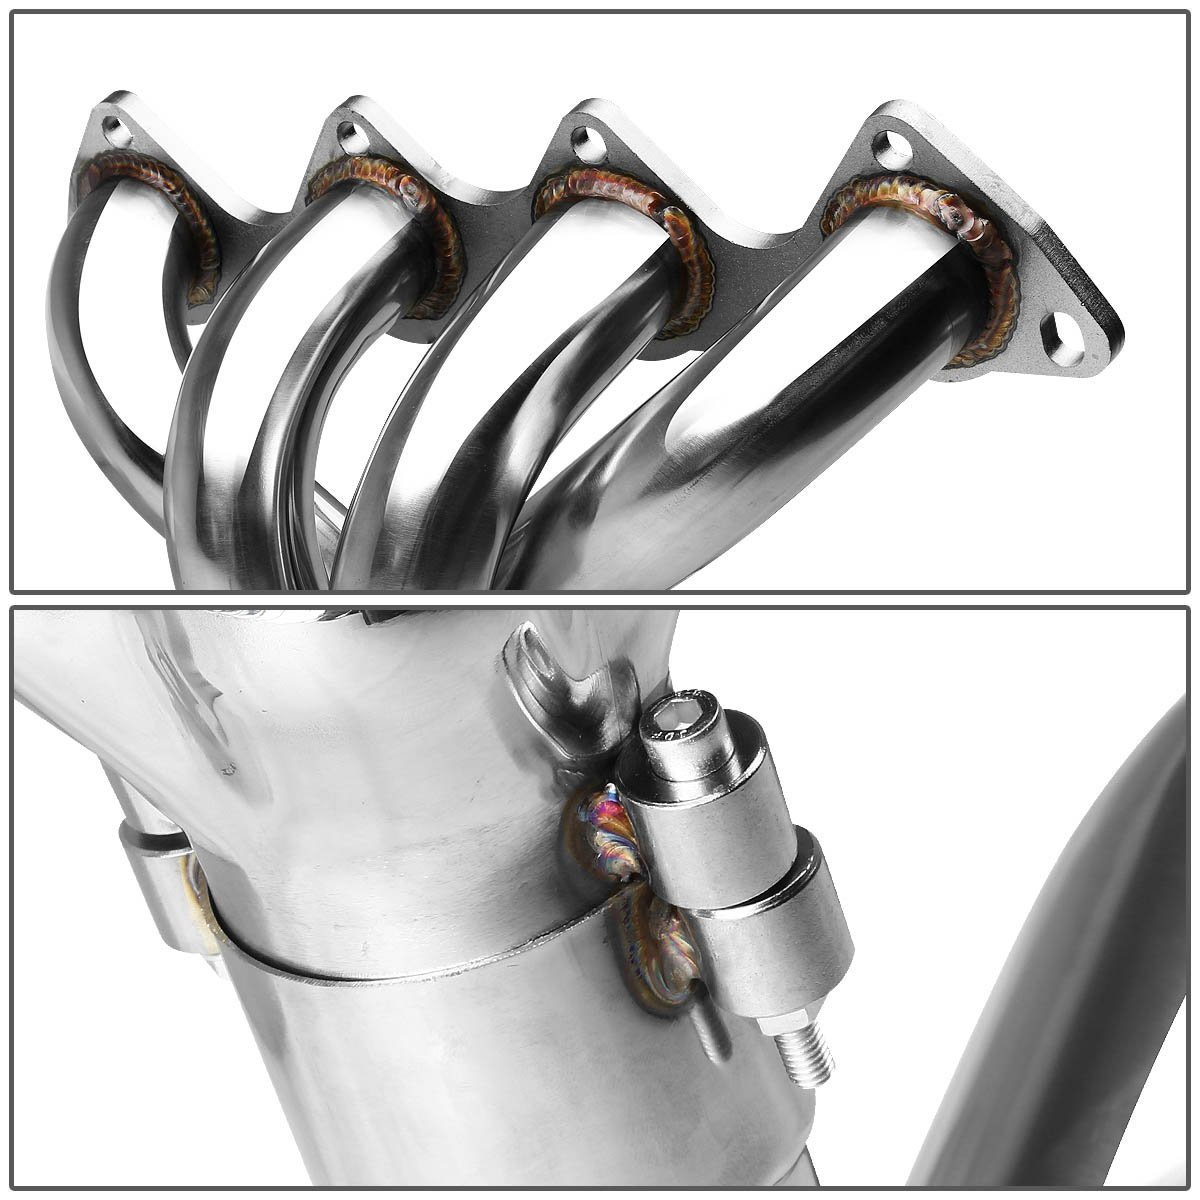 For Acura Integra DC4 Stainless Steel 4-1 Header//Exhaust Tubular Manifold